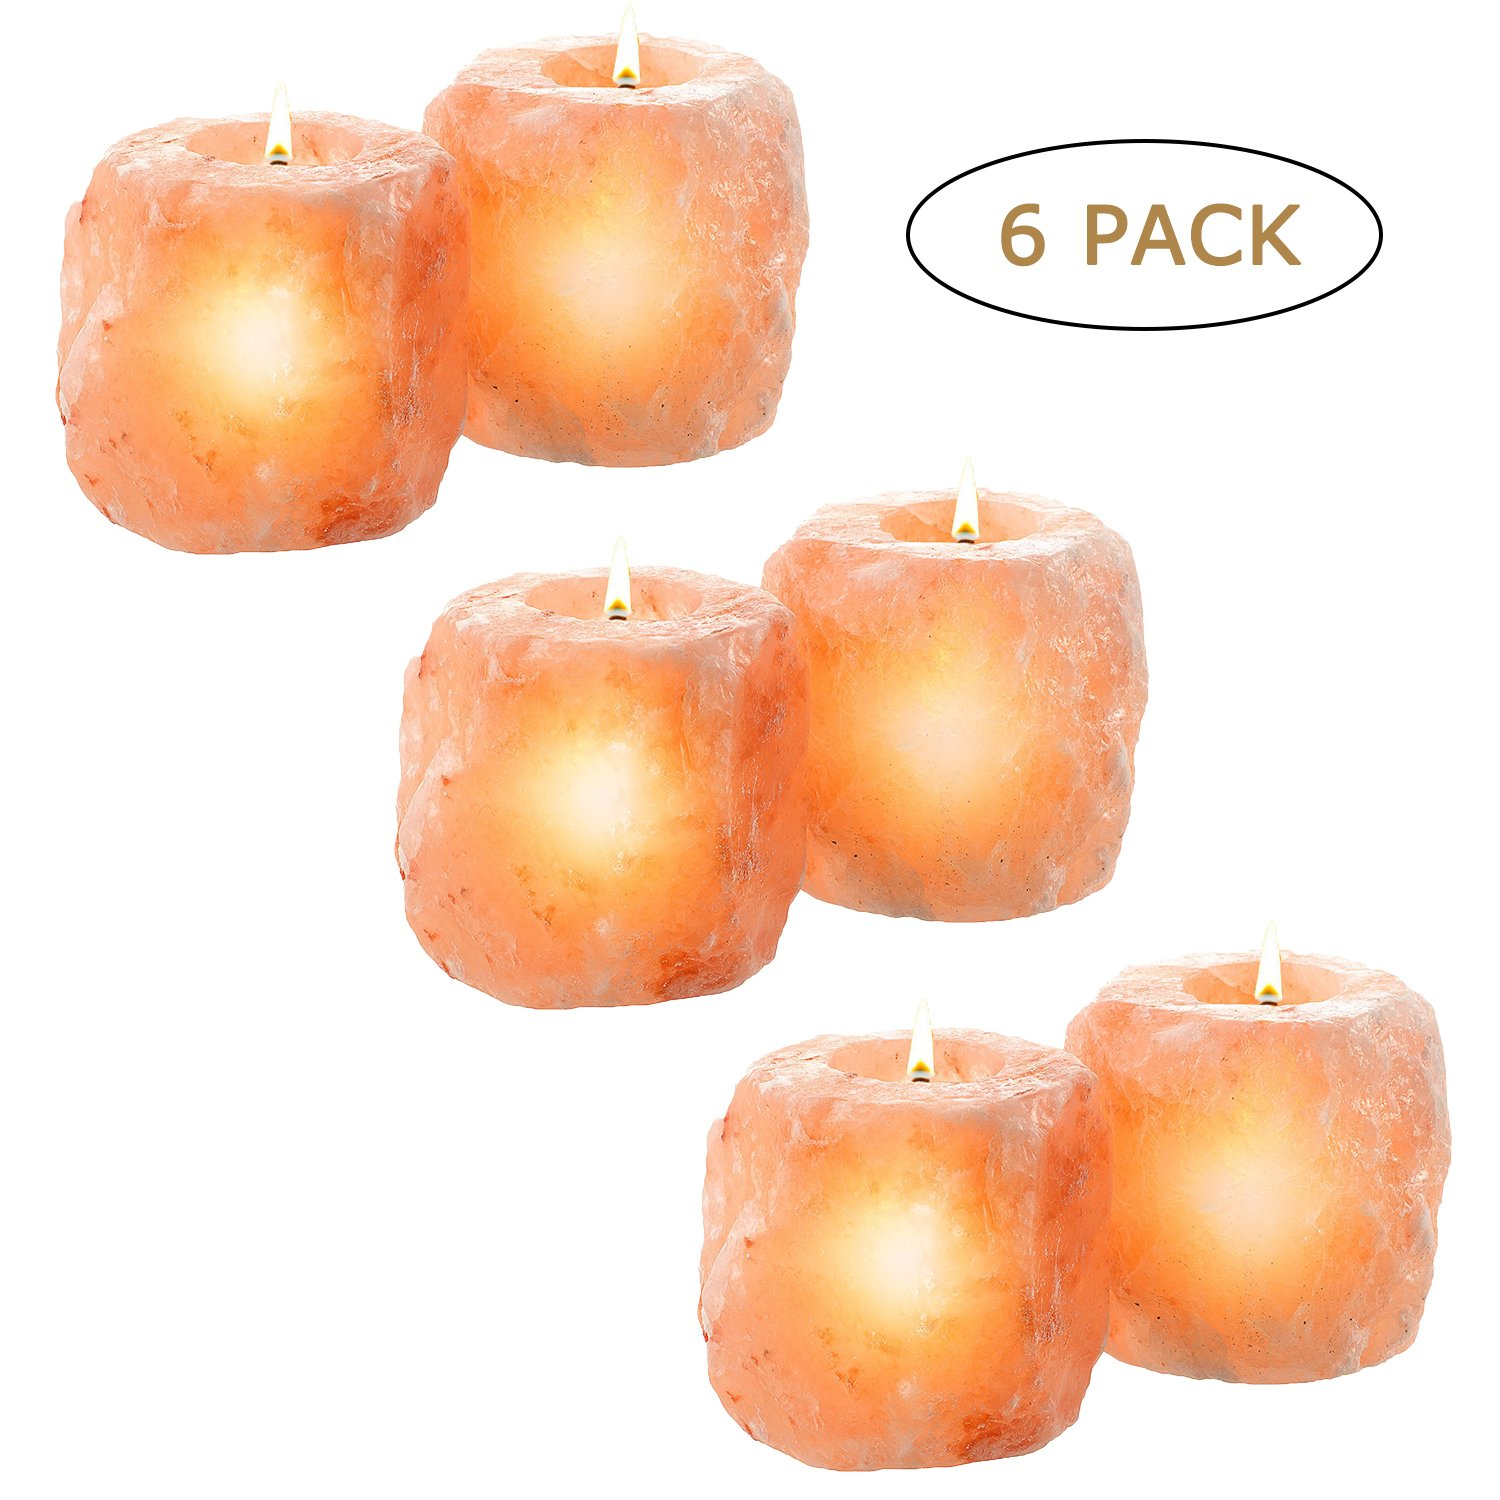 Heavy Duty 6 Pack Large (Approx 2.5lb Each) Natural Himalayan Salt Candle Holder Holders, Hand Carved Himalayan Pink Crystal Rock Tea Light Tealight Candle Holder – Perfect Fit Himalayan Salt Lamp